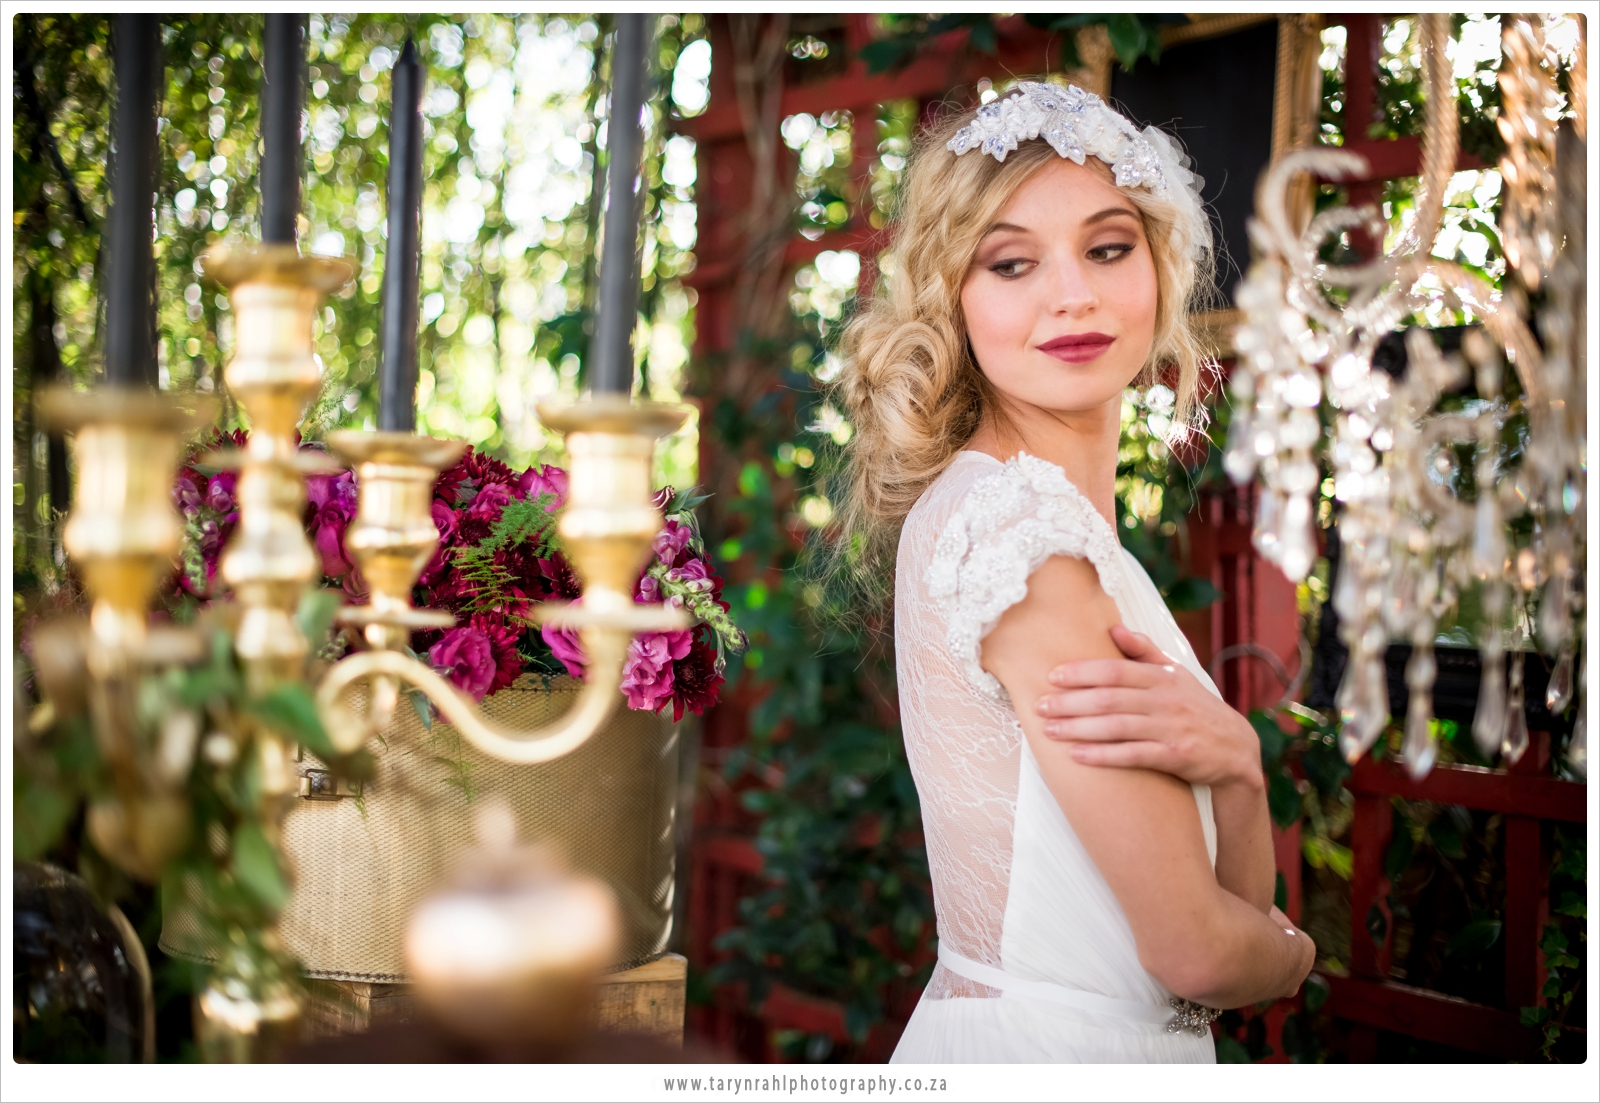 The enchanted garden | Styled Shoot